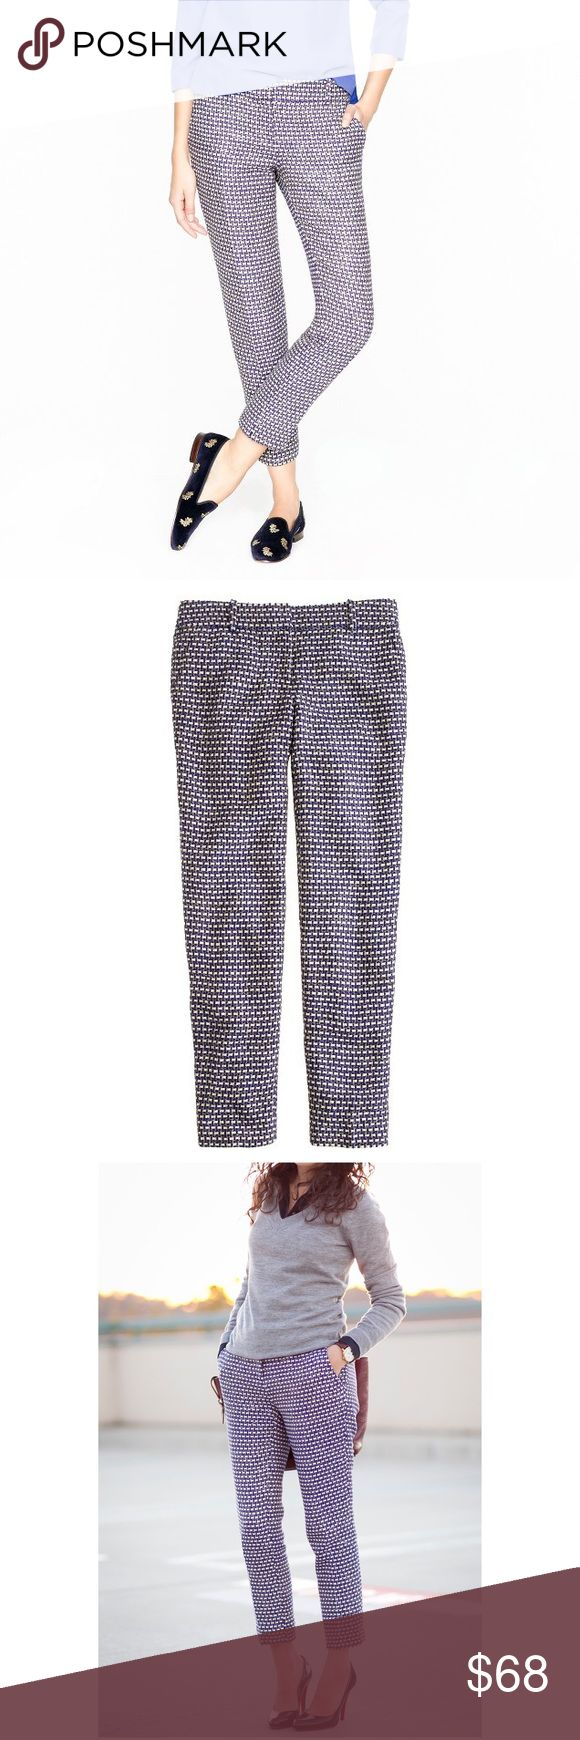 "J. Crew Café Capri In Navy Tweed size 4 $148 🦄 Size 4. Originally $148. ""The famous café capri (one of our top bottoms) gets an extra dose of polish in this lightweight basket-weave tweed our designers handpicked for its graphic colors and subtle sheen—it's woven with tinselly Lurex® threads throughout. Pair it with its matching jacket (plus the pumps, if you dare) for a classic, ladylike spin on the hookup."" Lined. Material is silk, cotton, viscose, & 2% other material. 🦄 J. Crew Pants…"